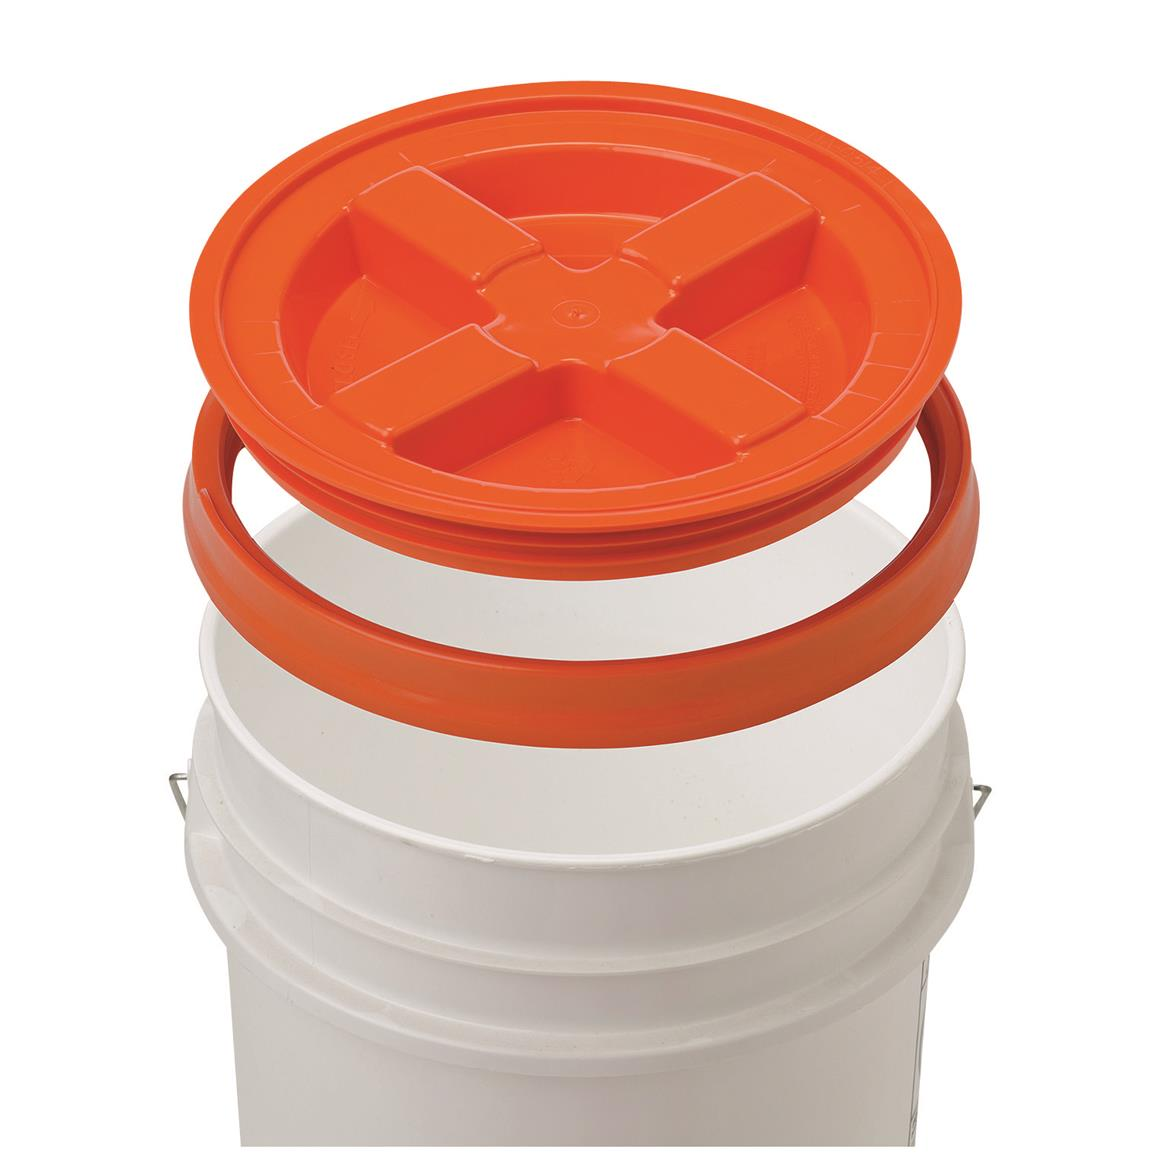 Simply snap the lid onto a standard bucket (not included)